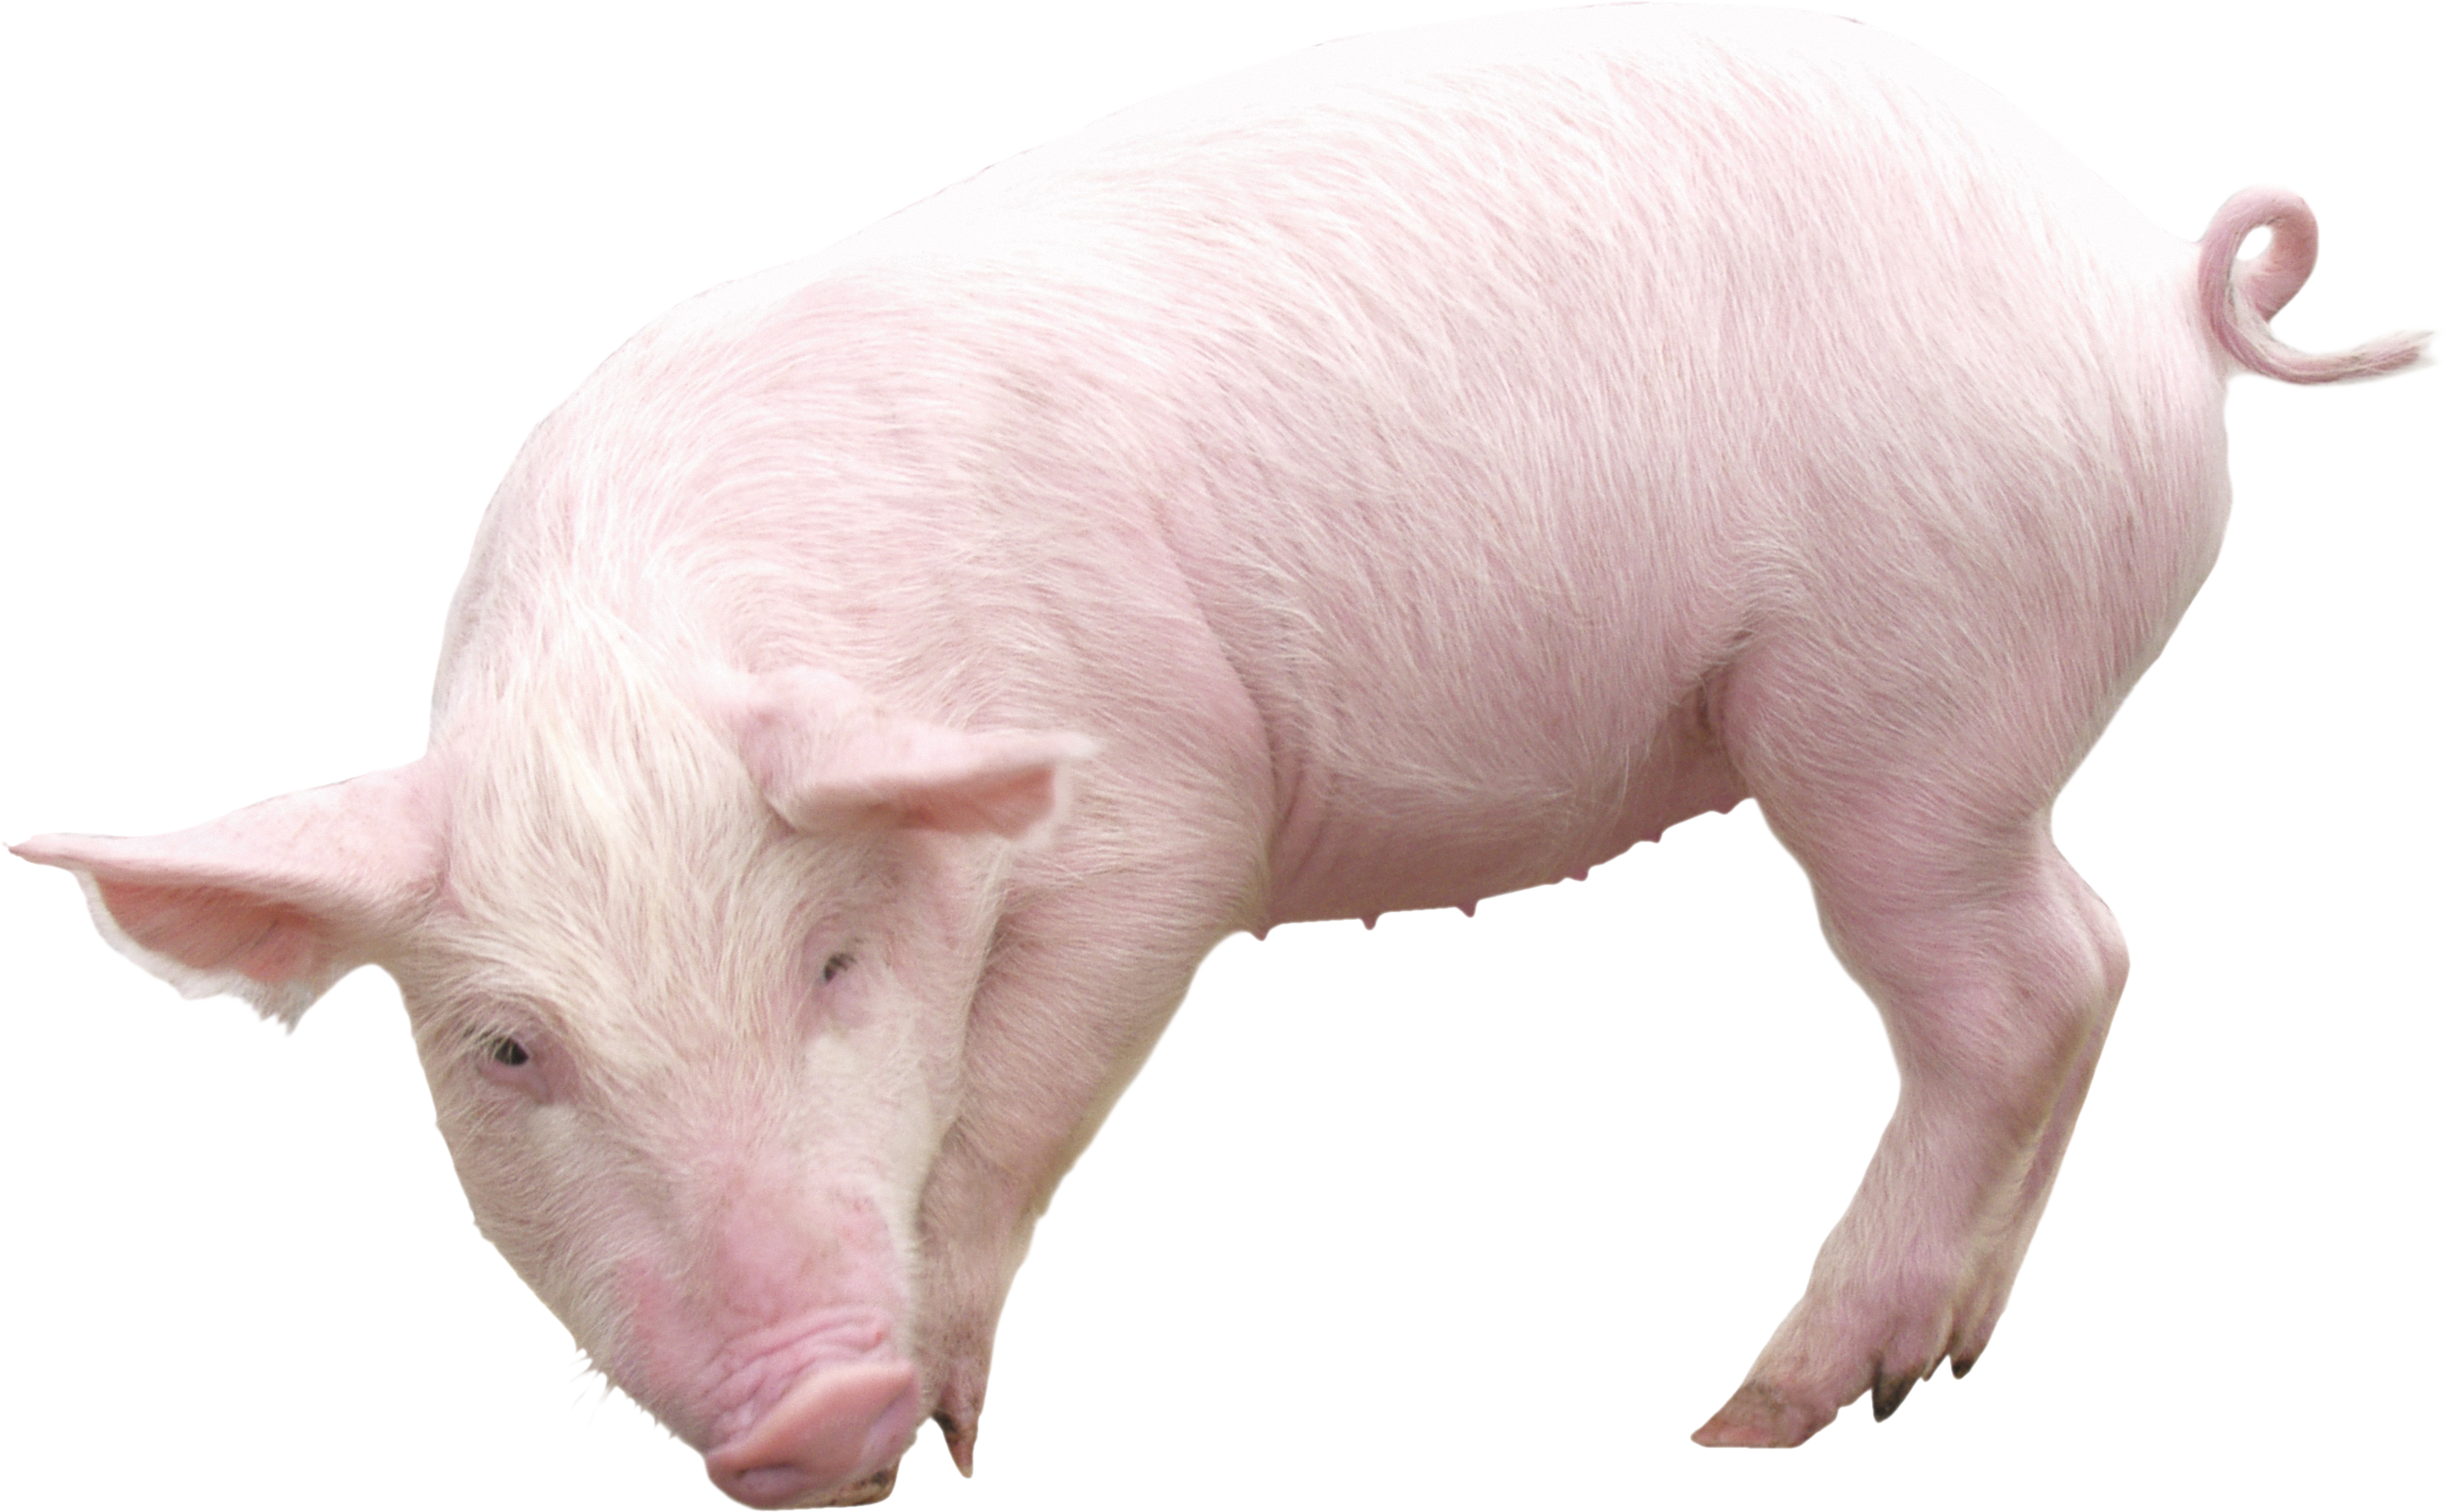 Clipart pig clear background. Seventeen isolated stock photo